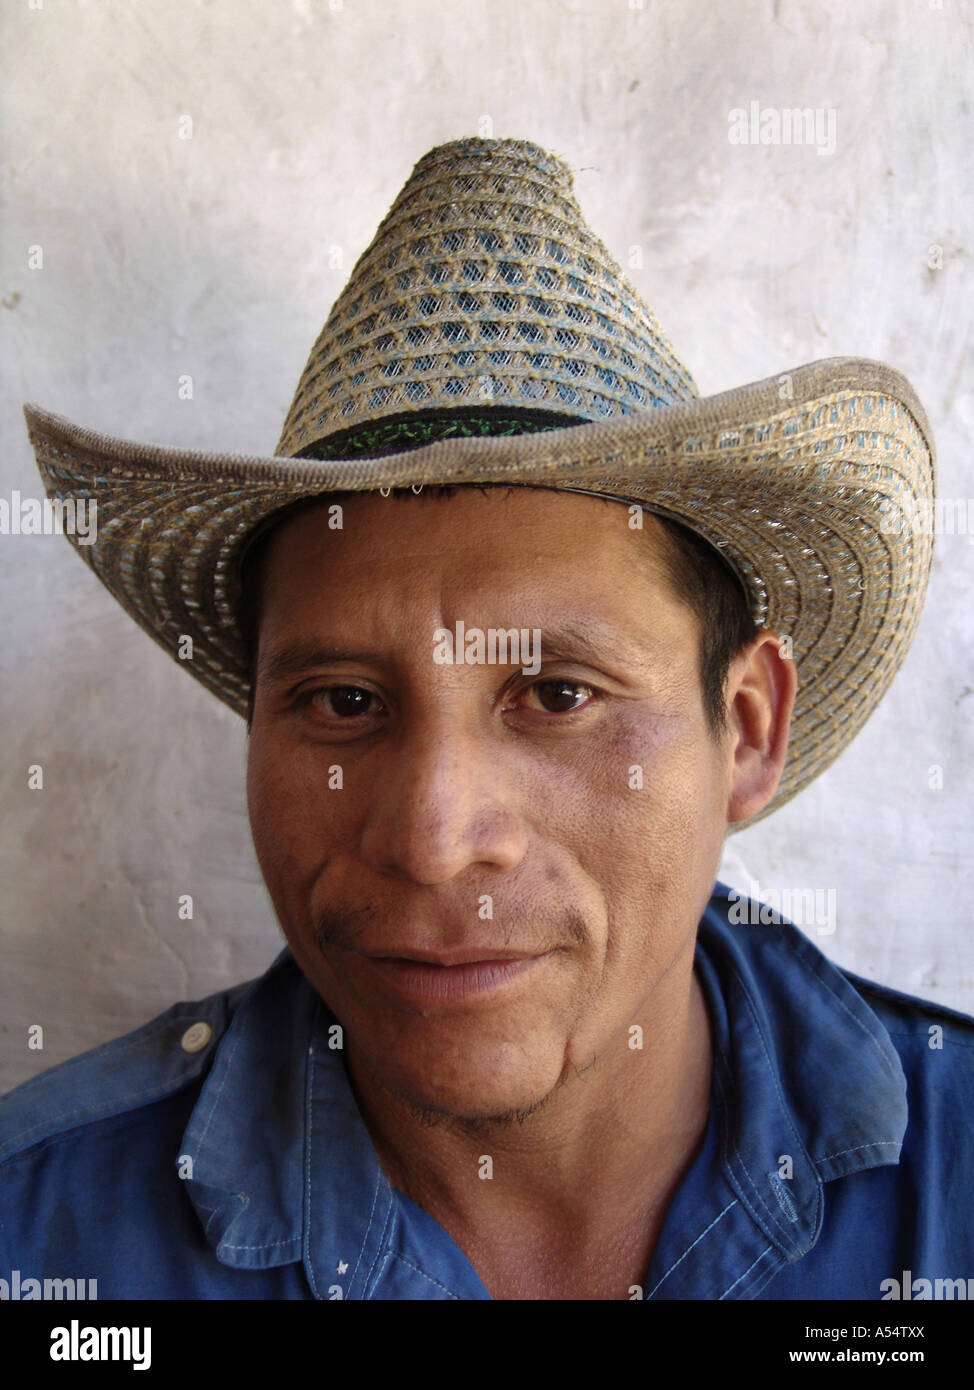 Painet ip1980 honduras man marcala country developing nation less  economically developed culture emerging market minority a11086e06d6